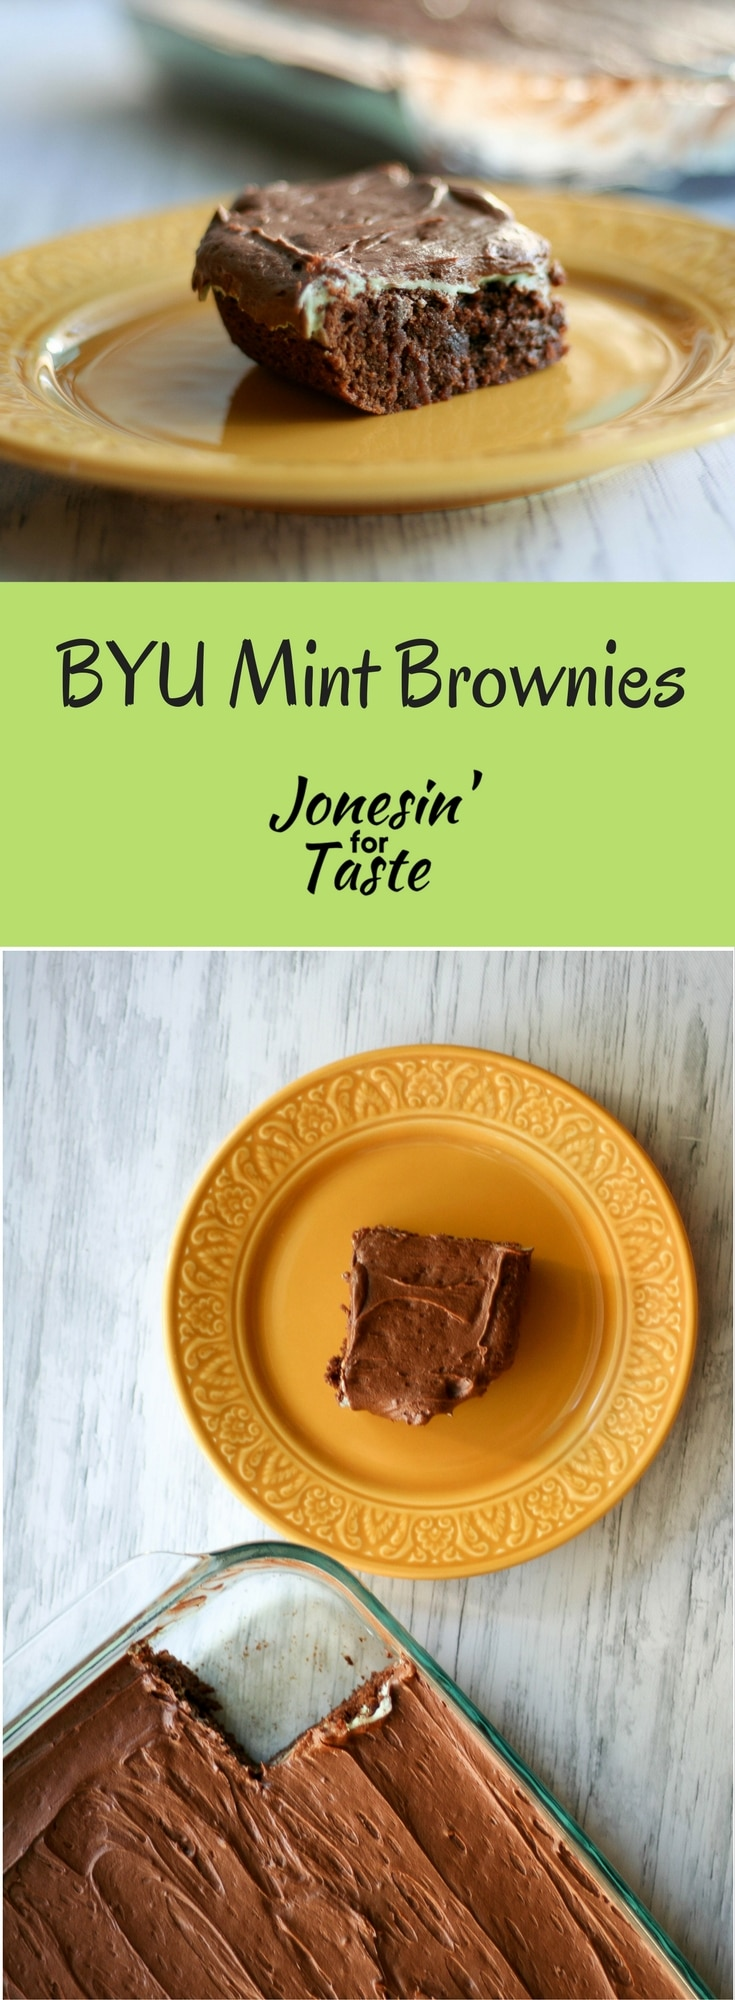 Homemade mint brownies are easier to make from scratch than you think.  With simple homemade frostings these mint brownies are brownies elevated. #homemadebrownies